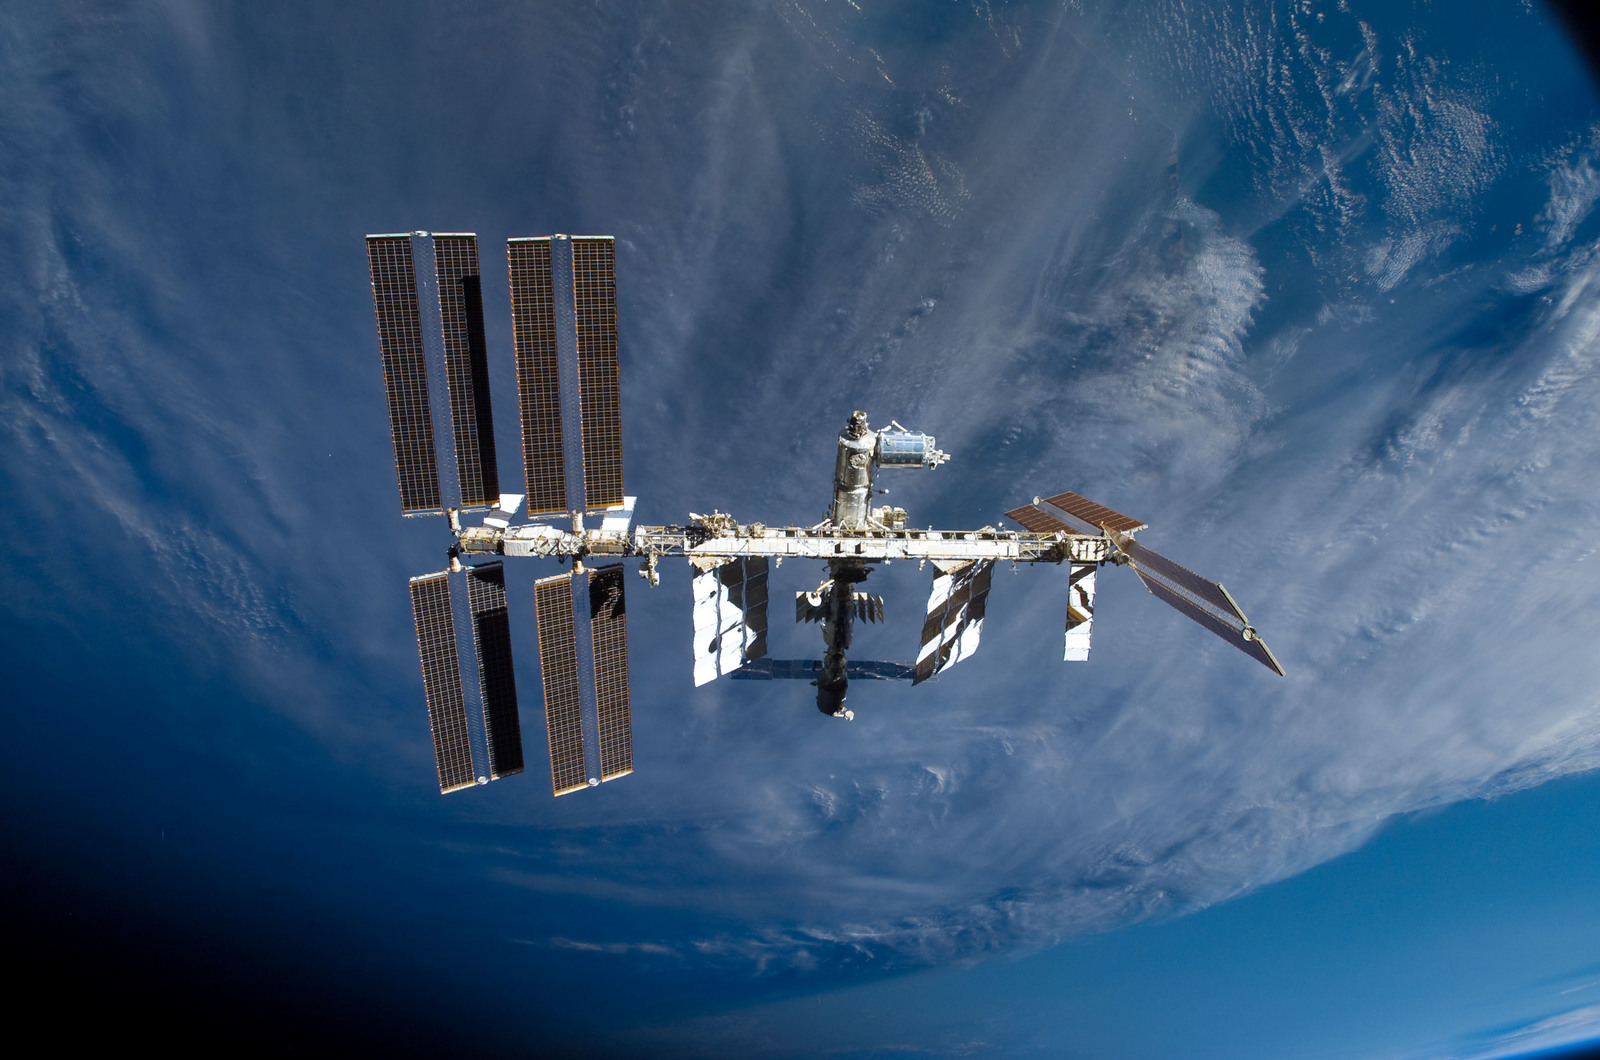 S122E009884 - STS-122 - View of ISS after STS-122 Undocking